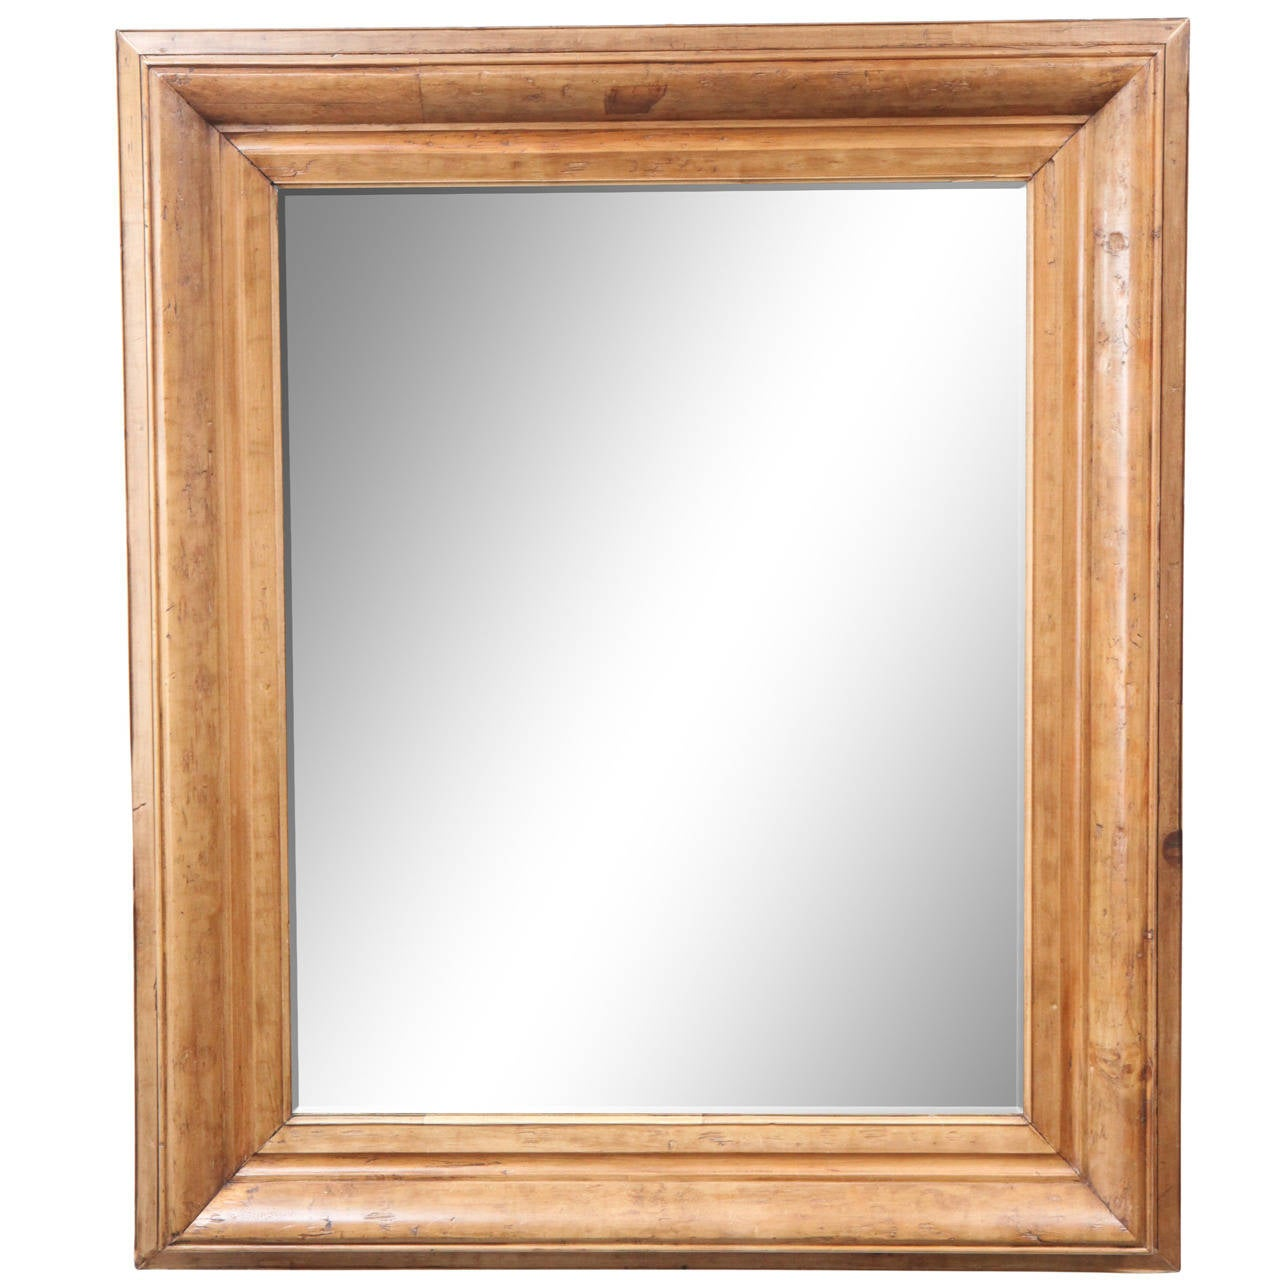 Large 19th century pine frame mirror at 1stdibs for Large framed mirrors